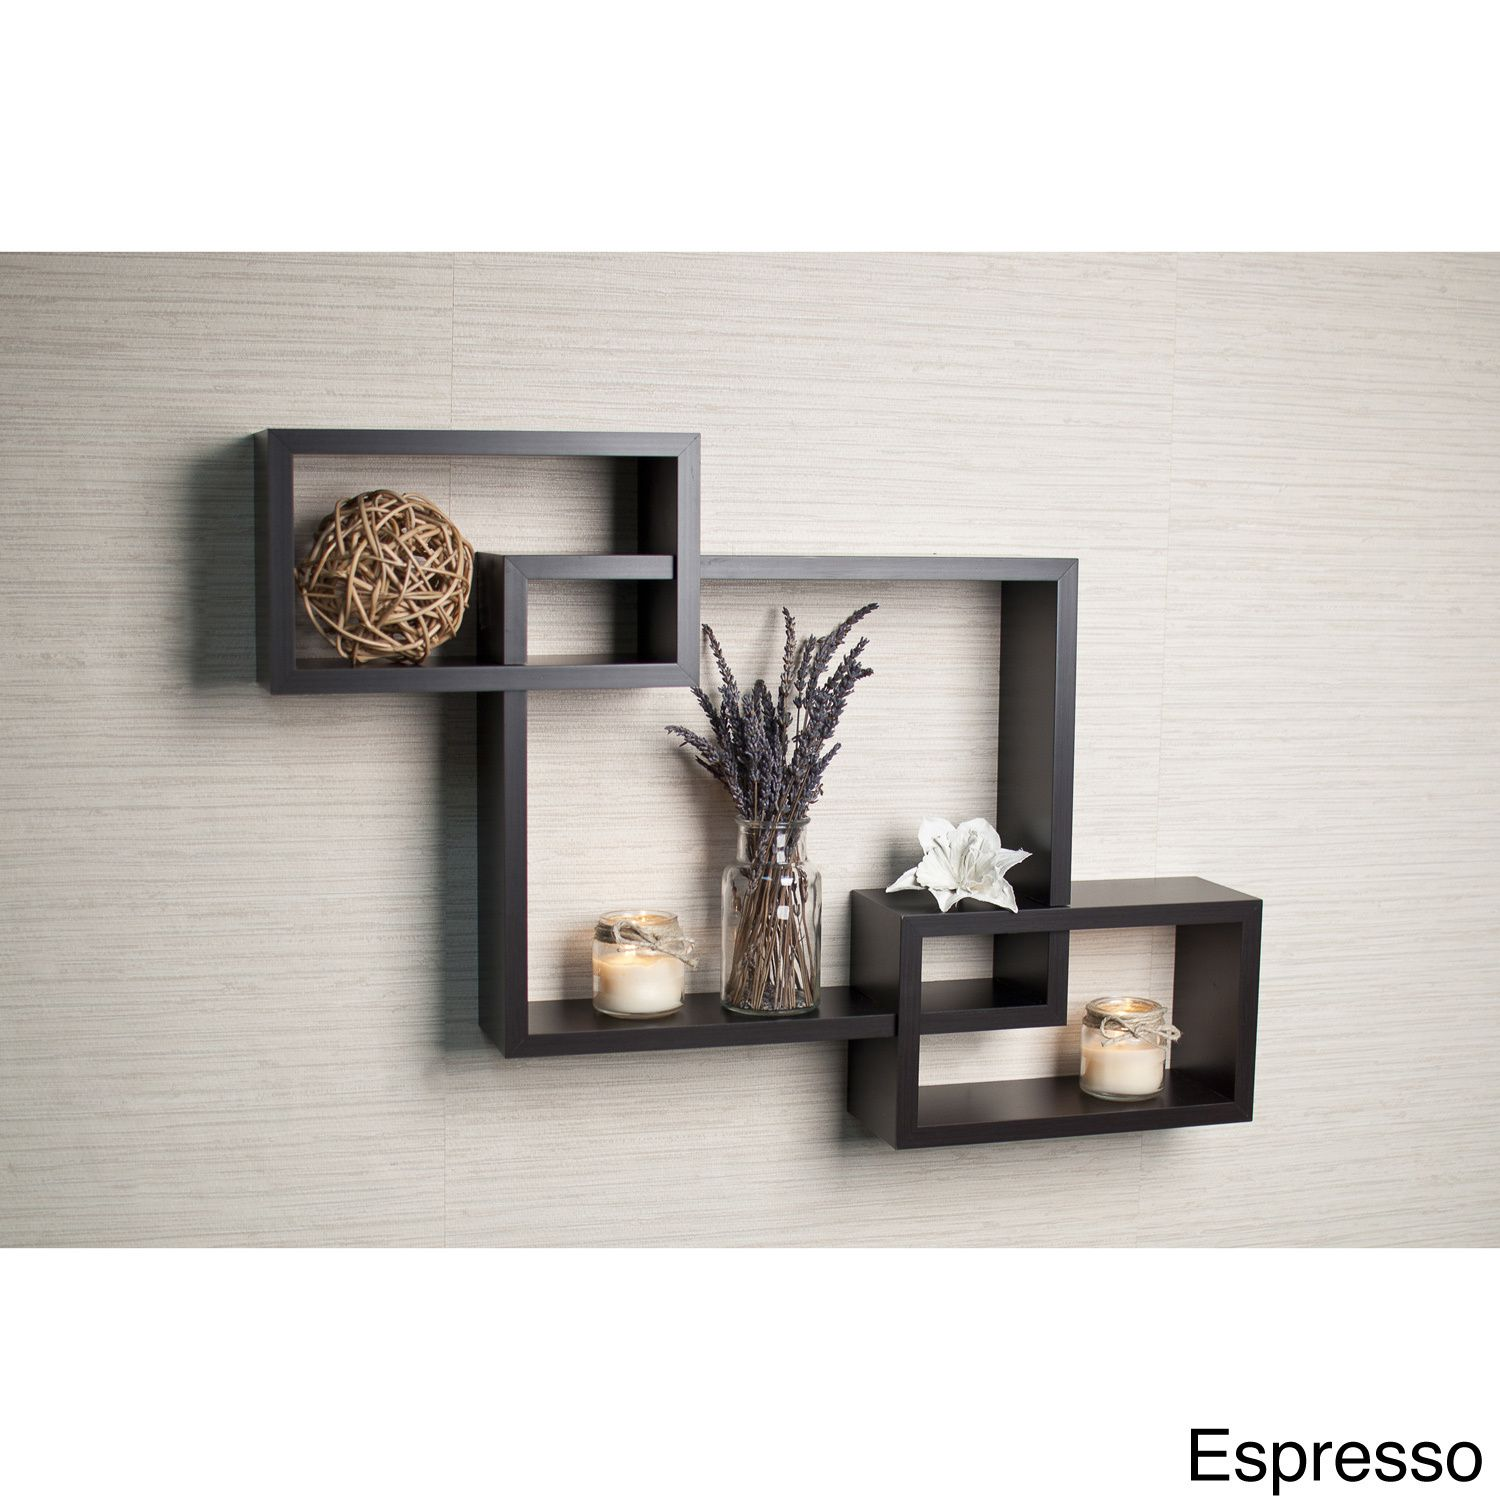 Description Decorative Wall Shelf This Intersecting Espresso Provides Three Storage Cubbies Plus Level Display Space On Top